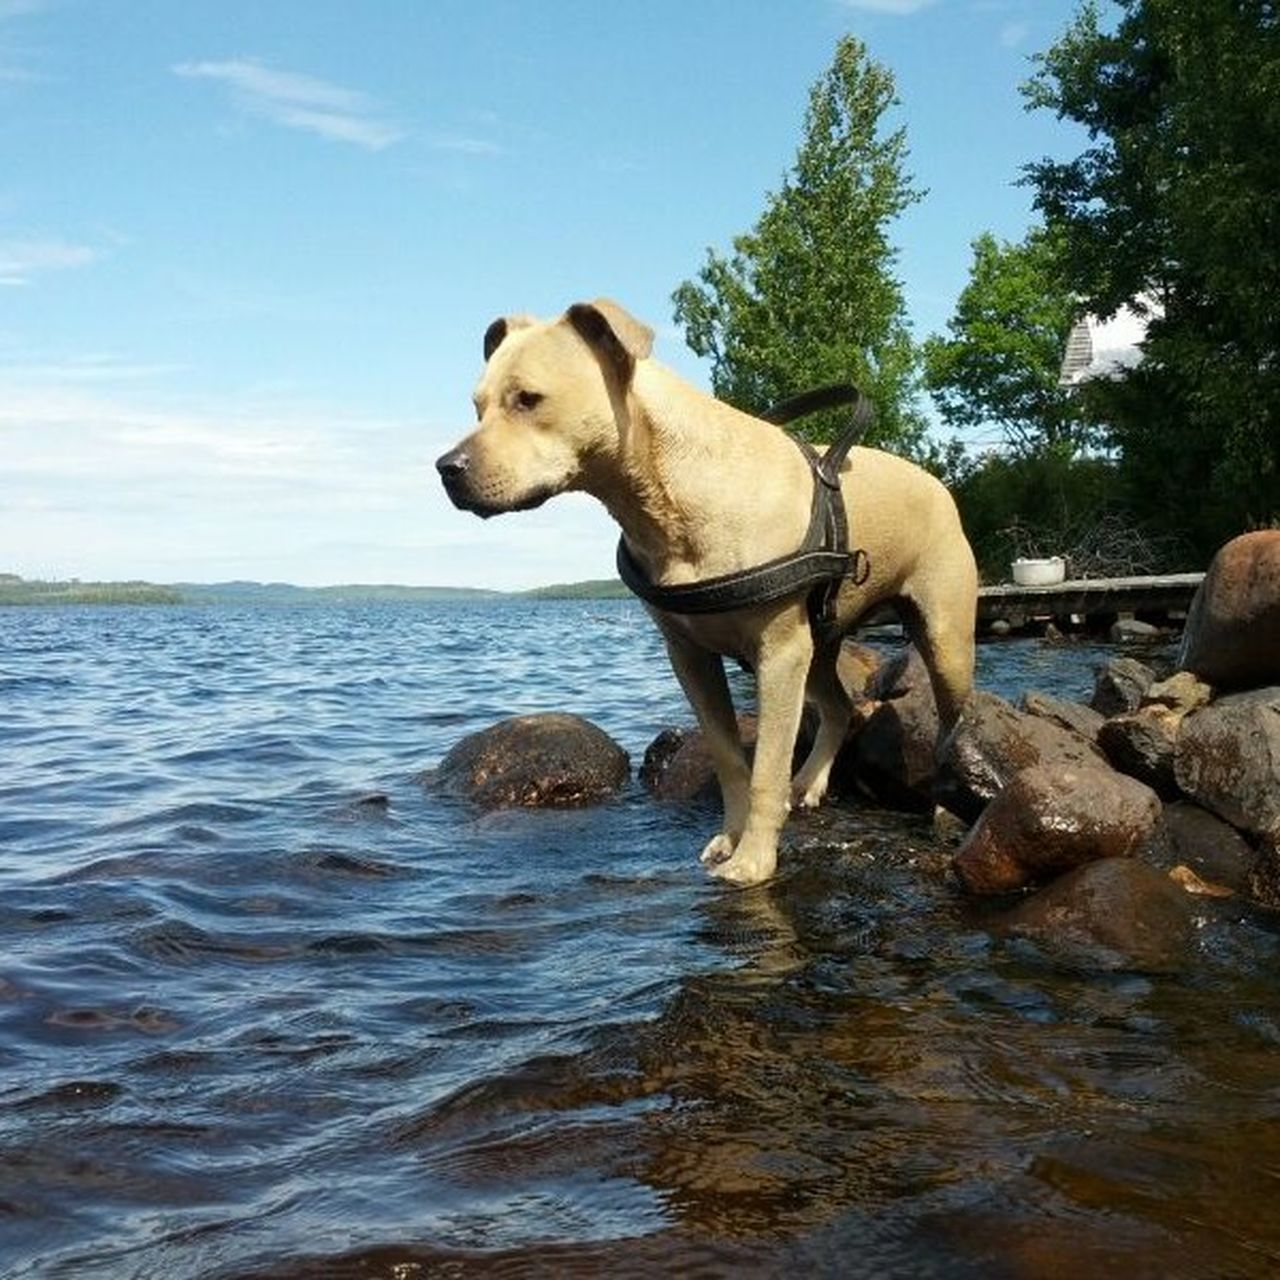 domestic animals, mammal, animal themes, dog, water, one animal, sky, day, outdoors, no people, nature, pets, tree